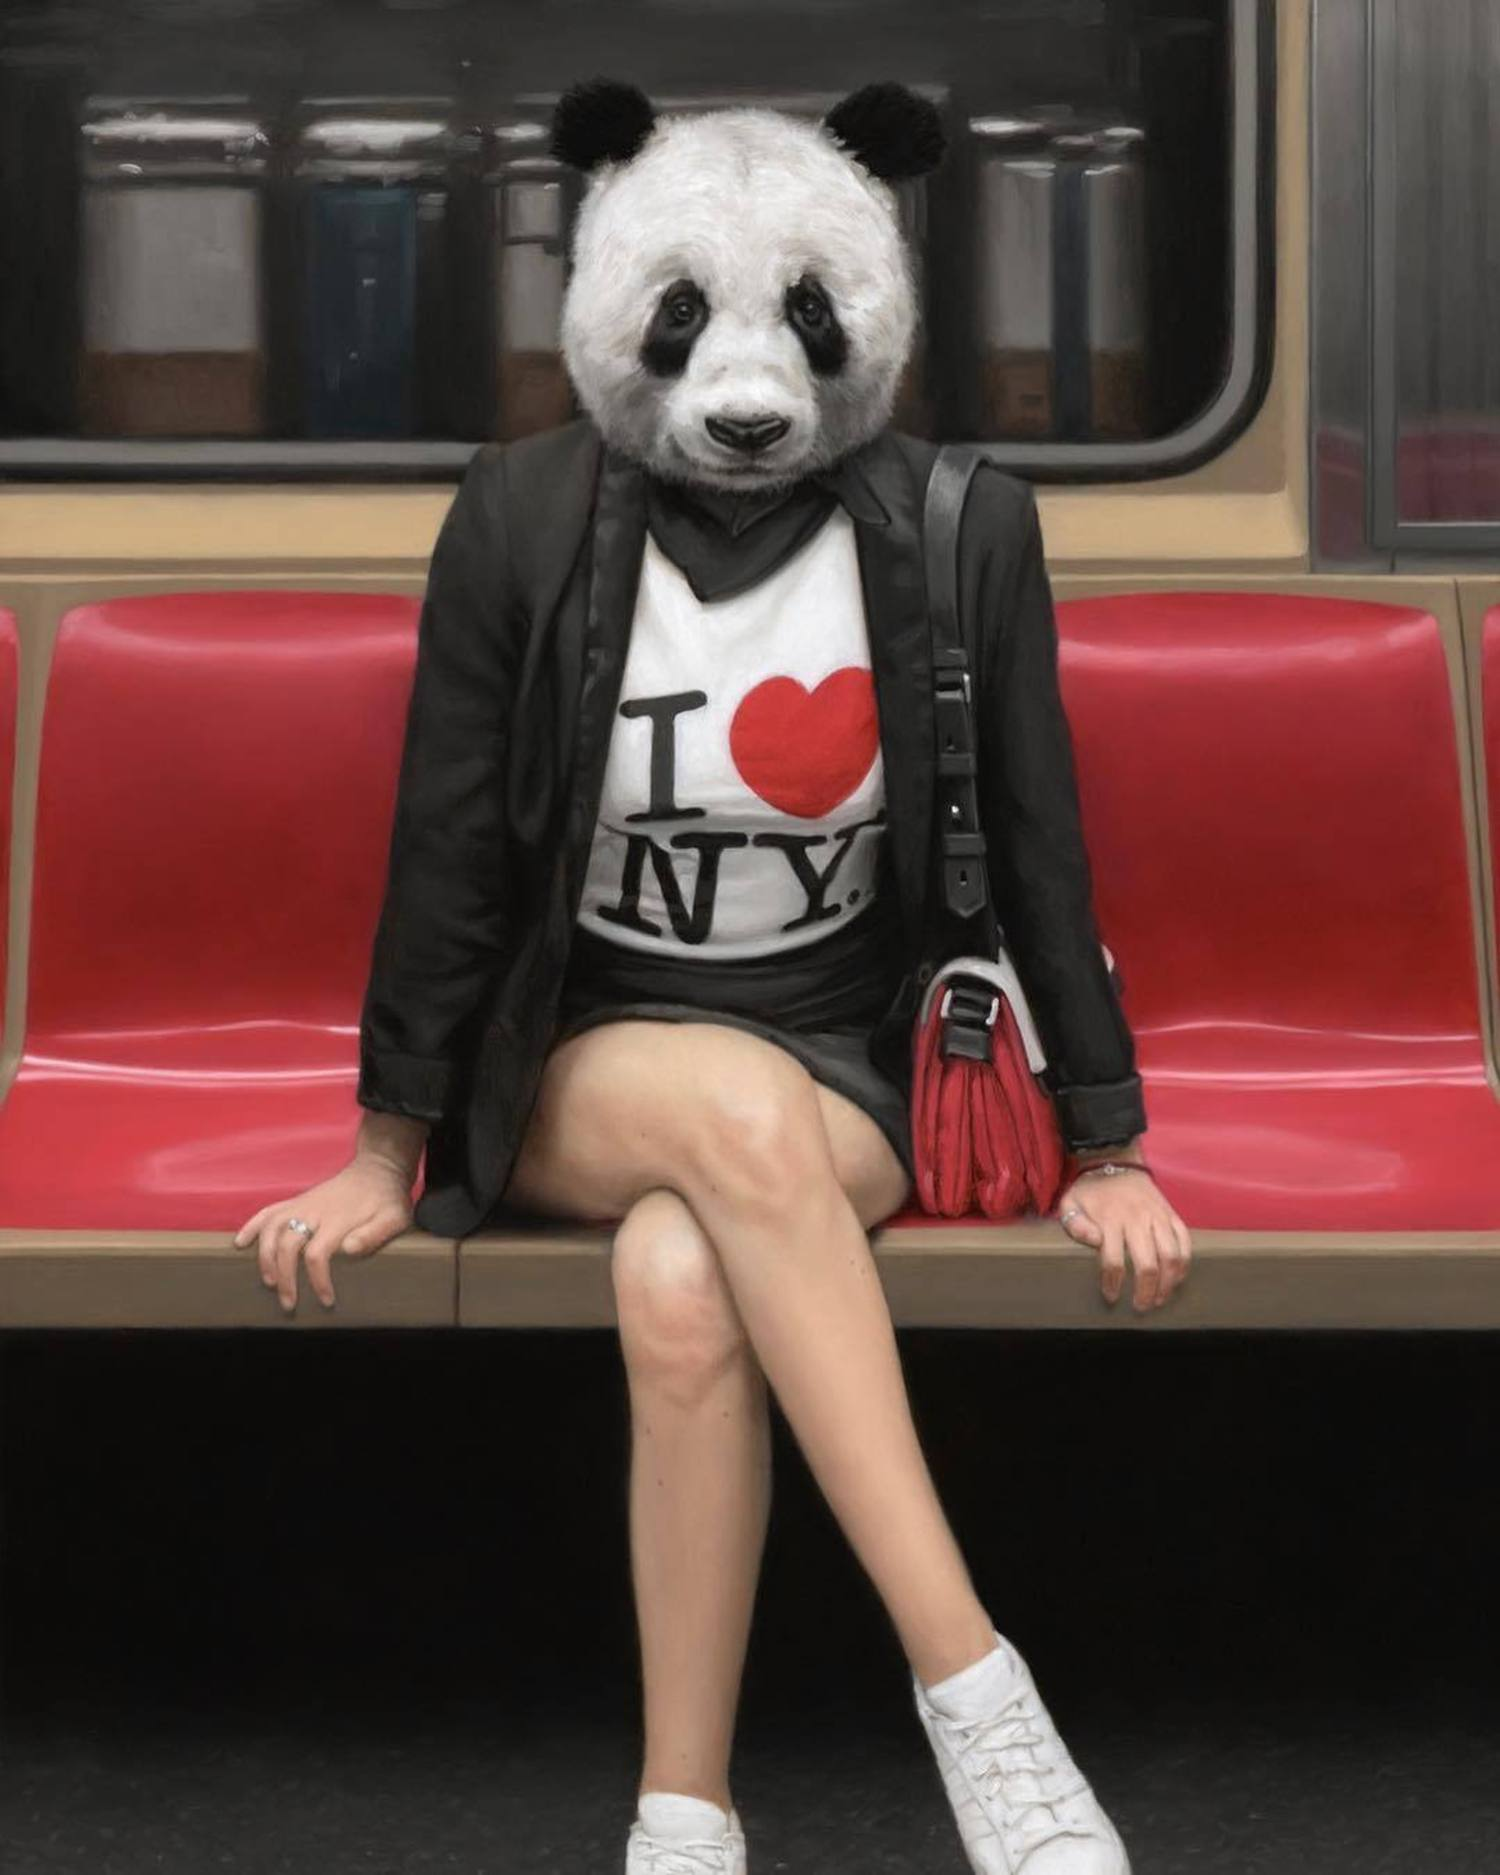 Here's the last oil painting from my recent show in New York. I'm so excited that my friend who modeled for this panda is pregnant! Look for some mother-daughter panda paintings coming up in 2018! 🐼